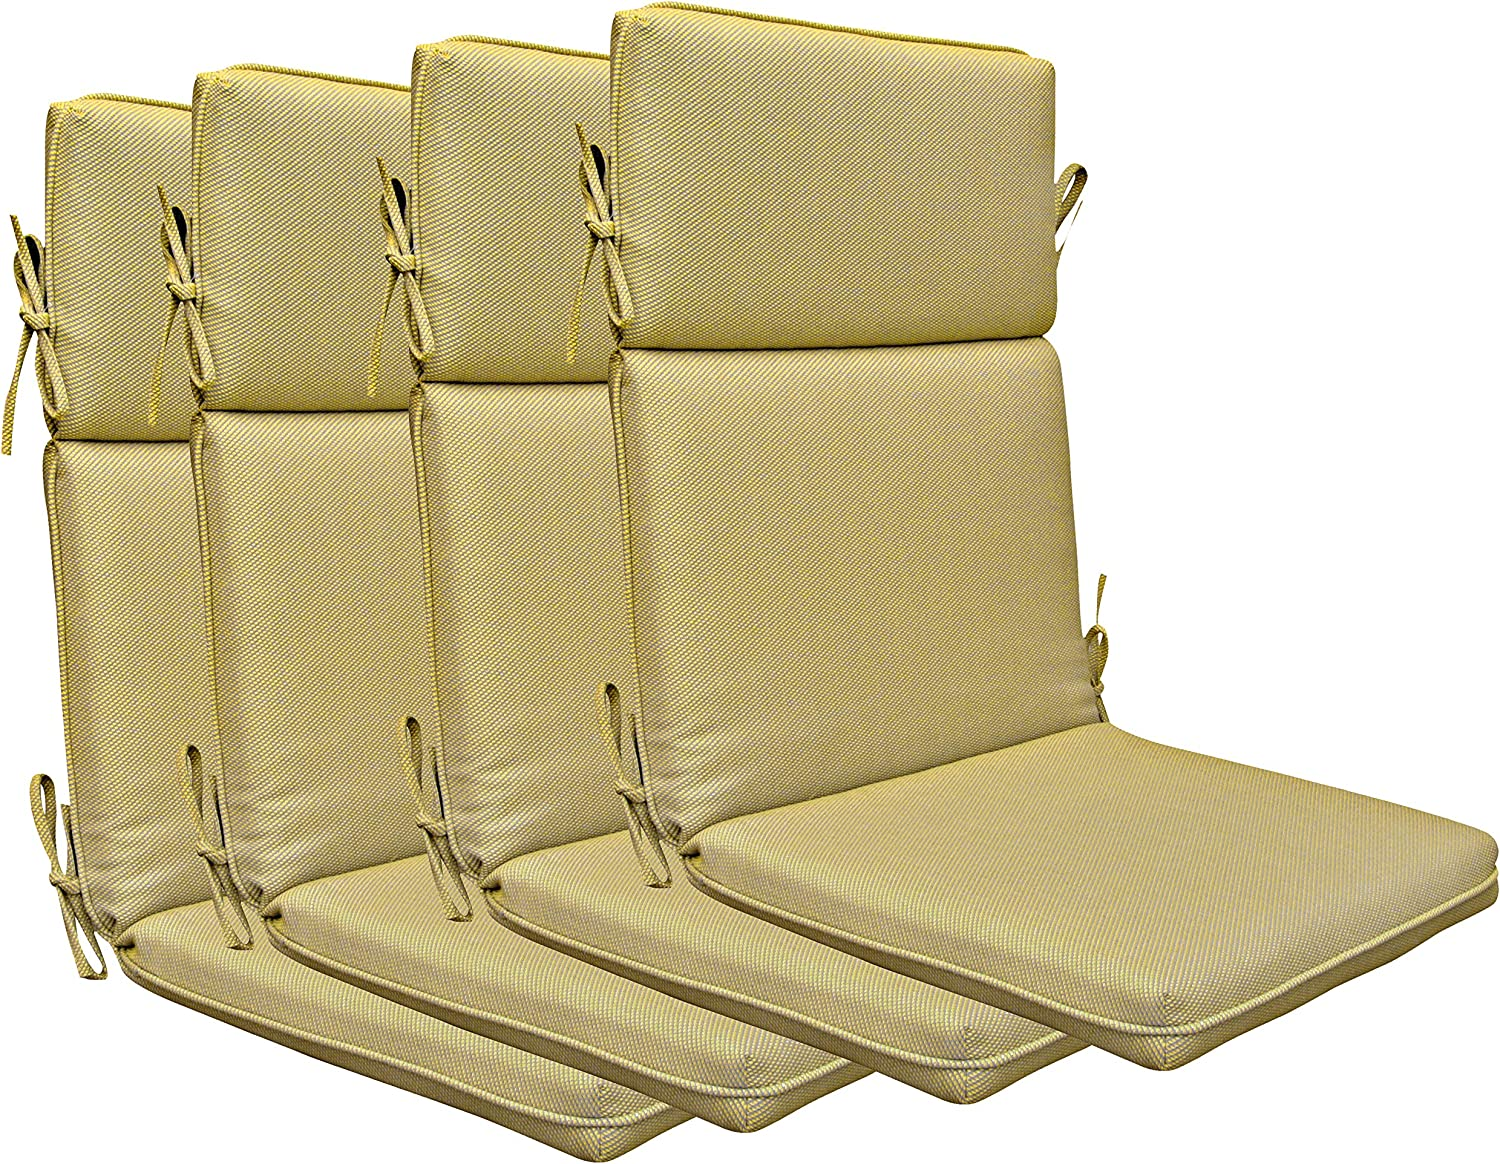 BOSSIMA Indoor Outdoor High Back Chair Cushions Replacement Patio Chair Seat Cushions Set of 4 (Yellow)